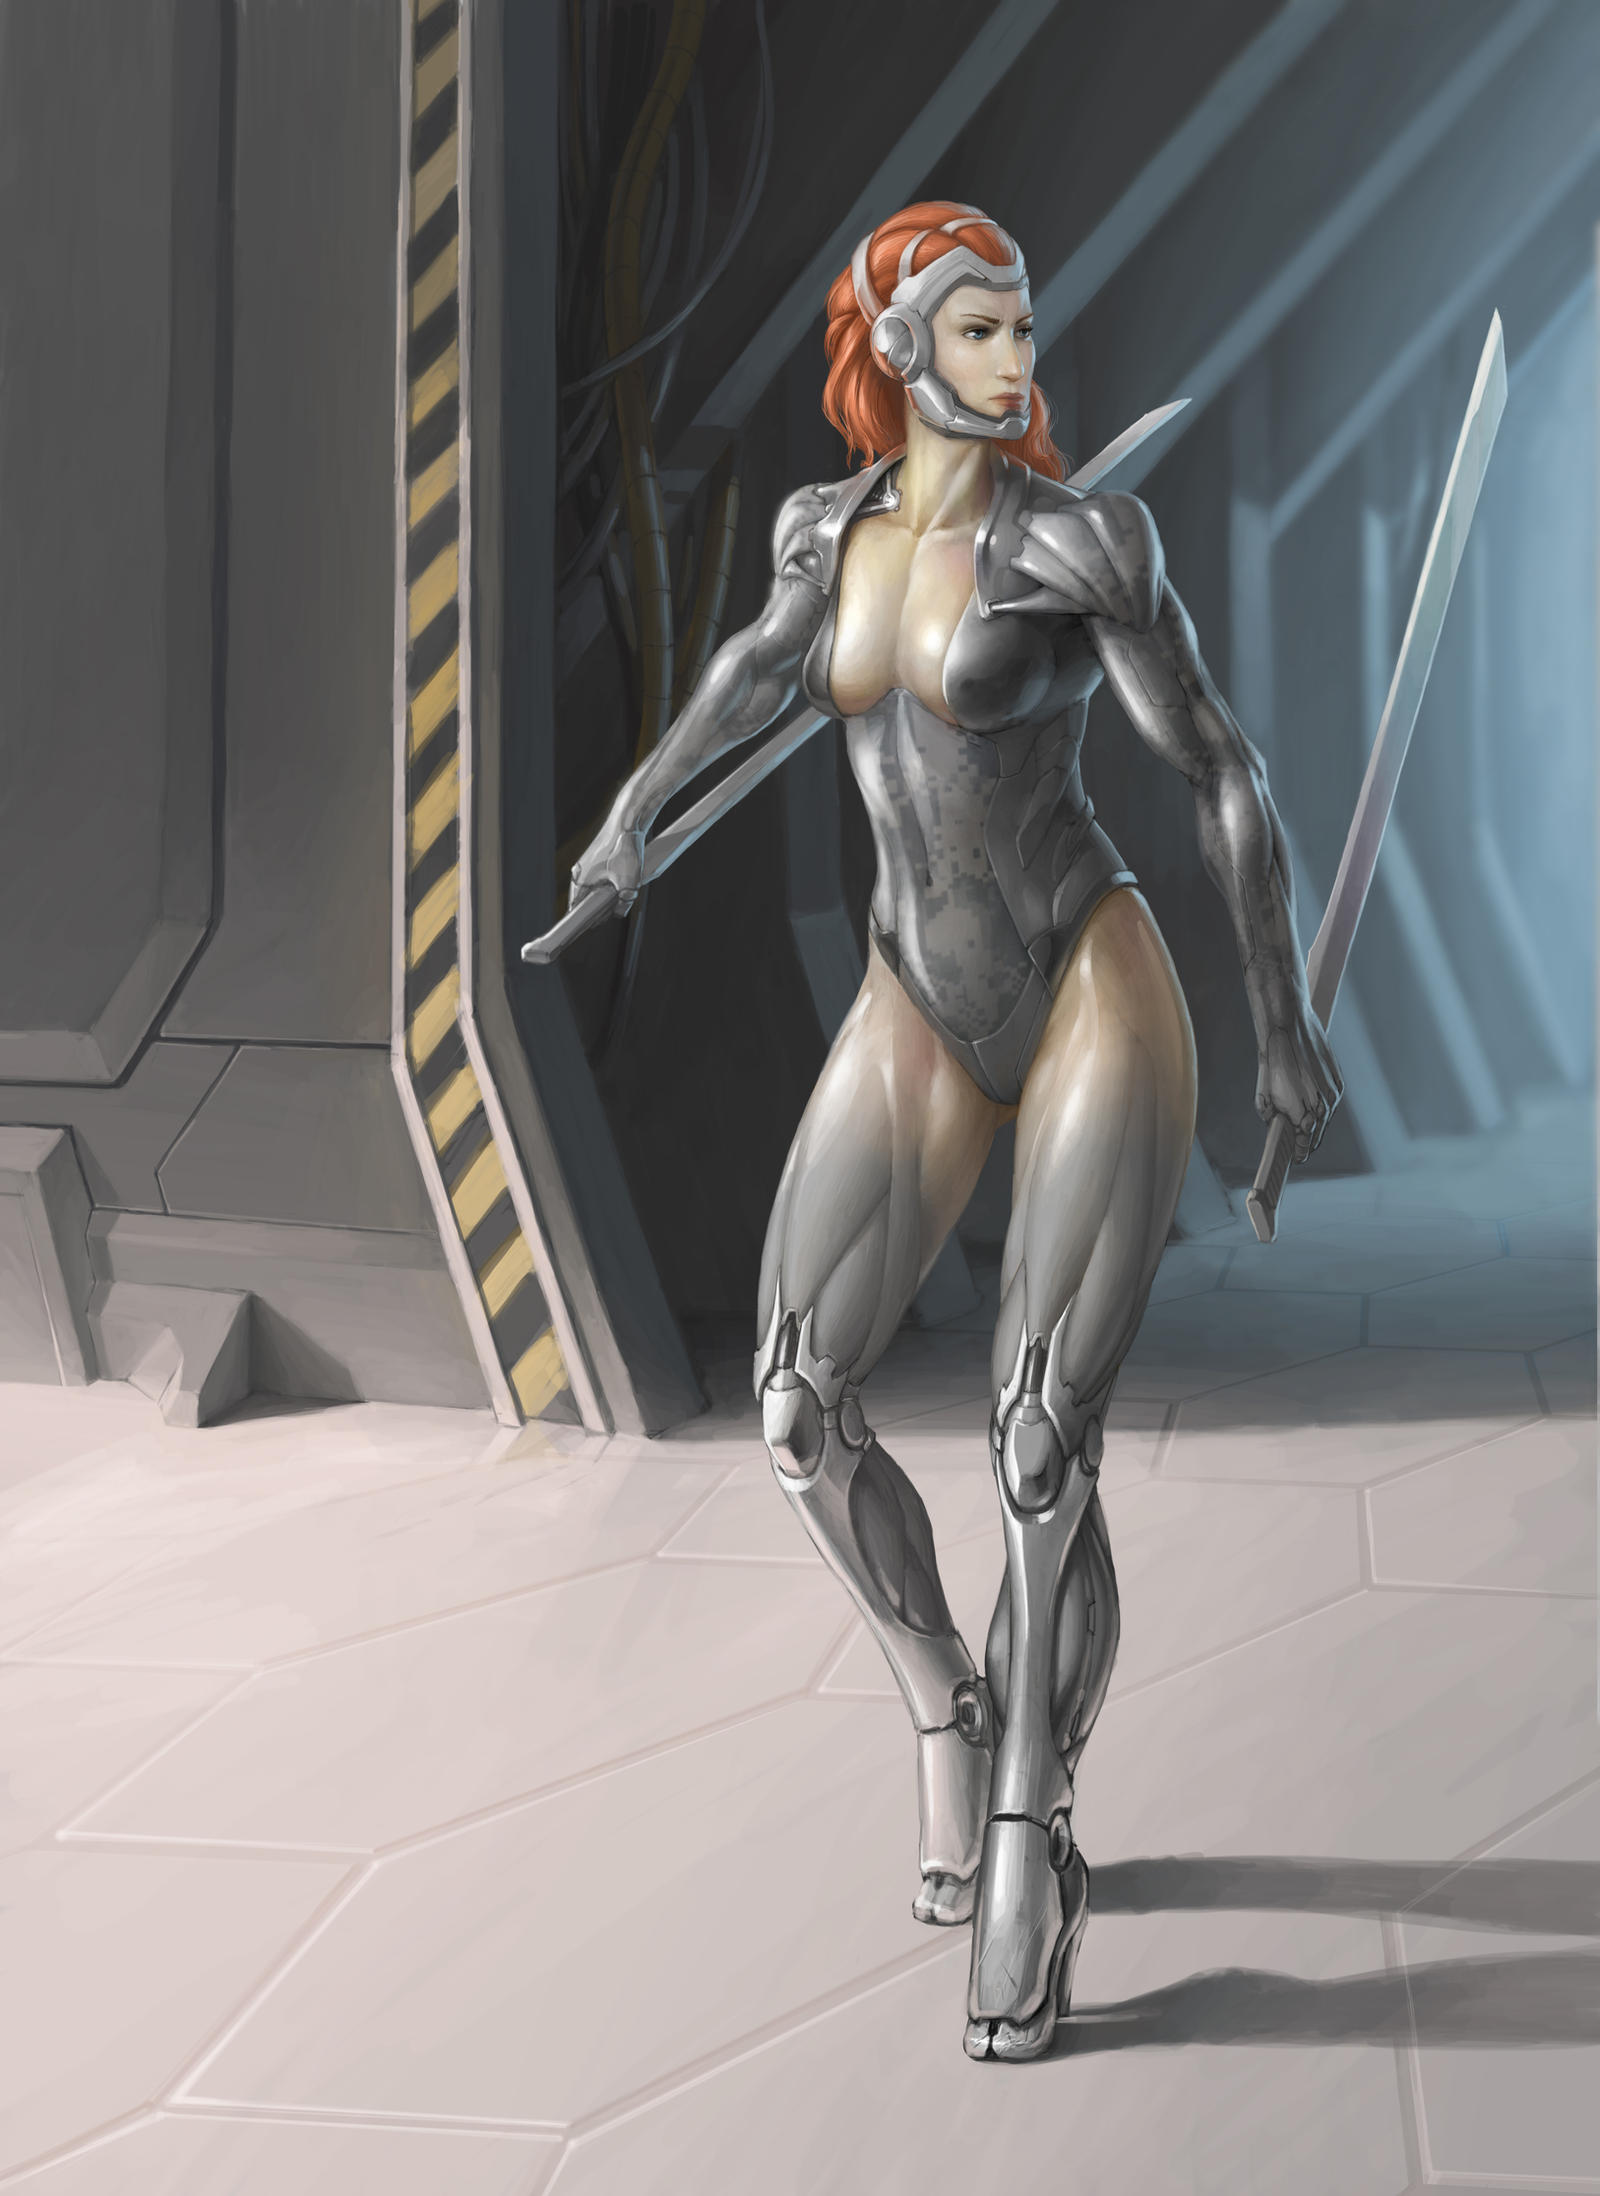 Character concept - Cyber Assassin by Machay